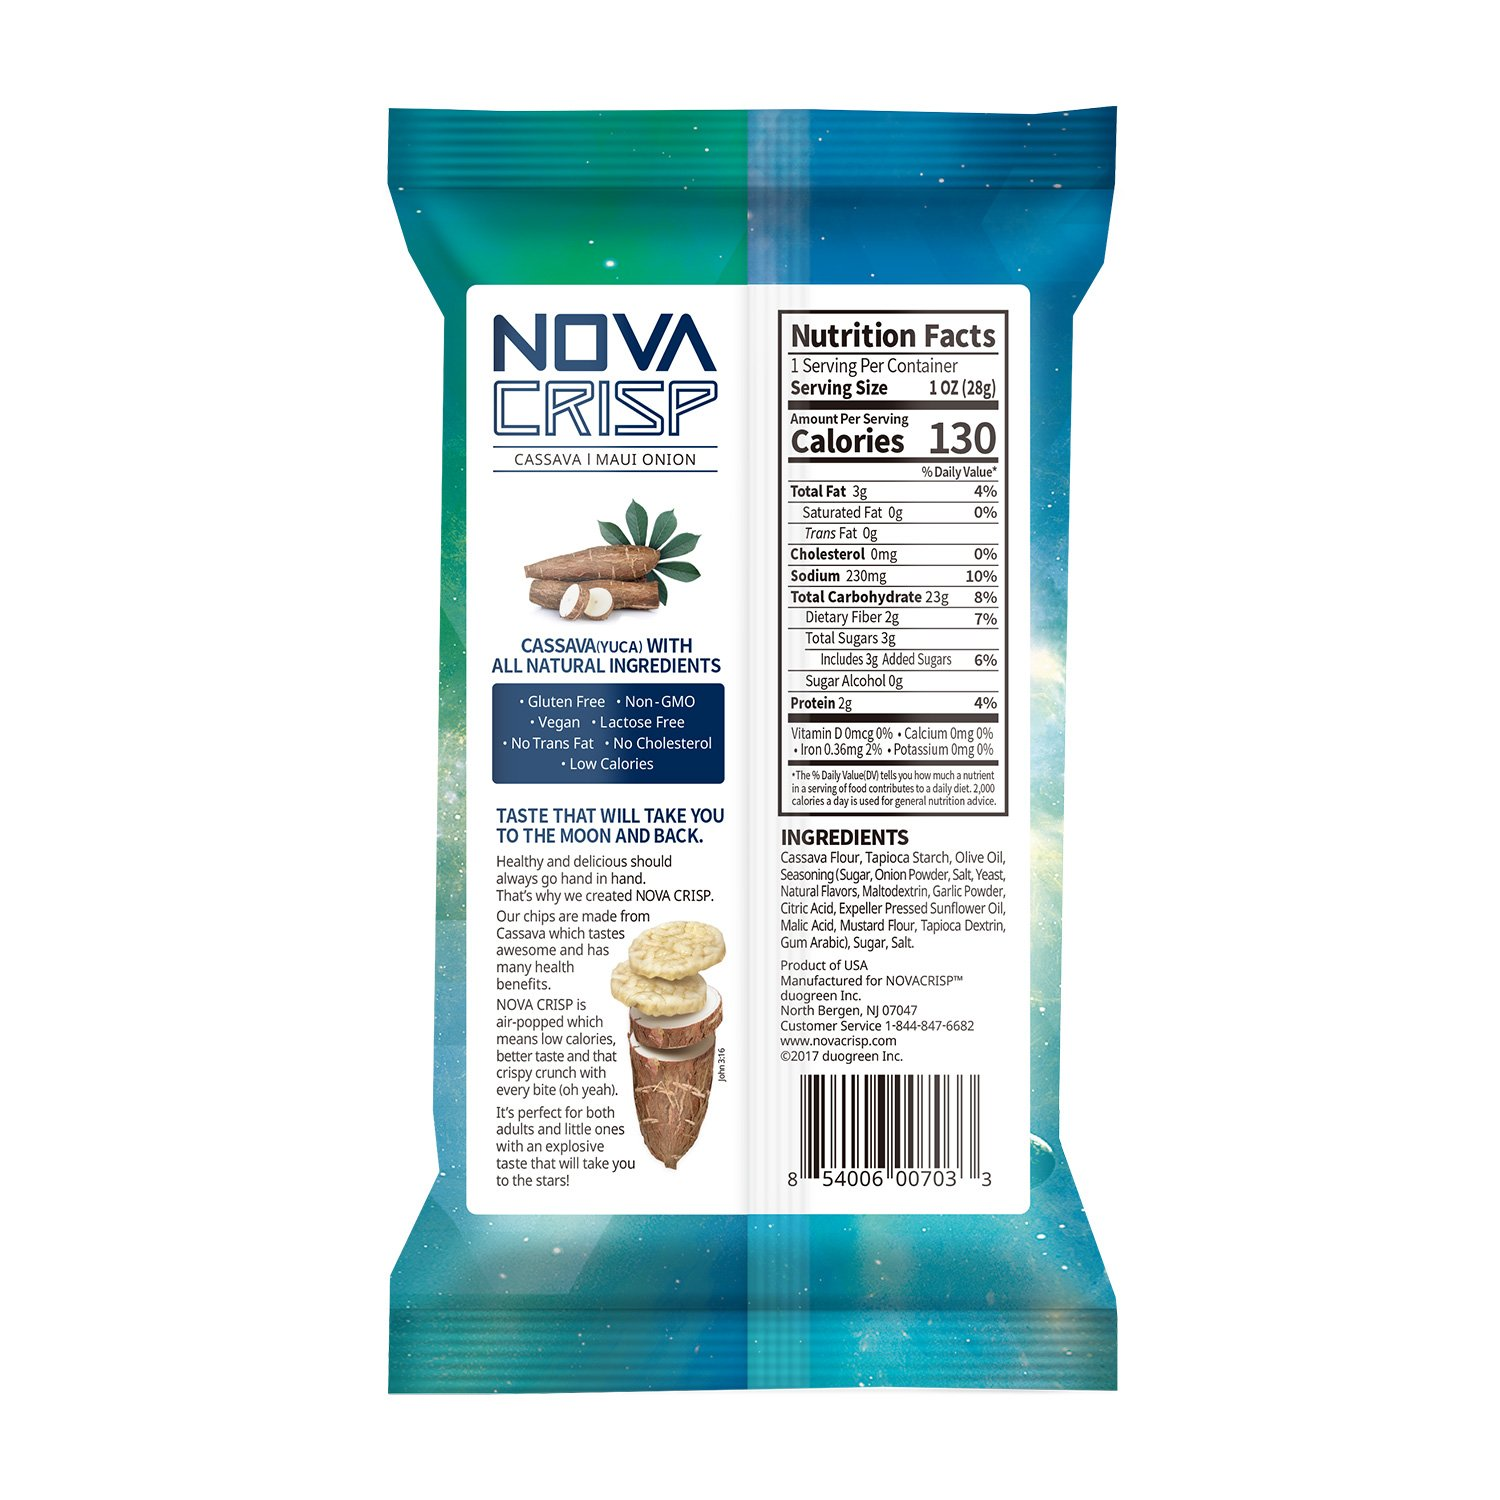 Snack Chips All Natural Popped Cassava Healthy Gluten Free Non-GMO Nut Free Snacks (Maui Onion, 1oz, 6 PACK) by NOVACRISP (Image #3)